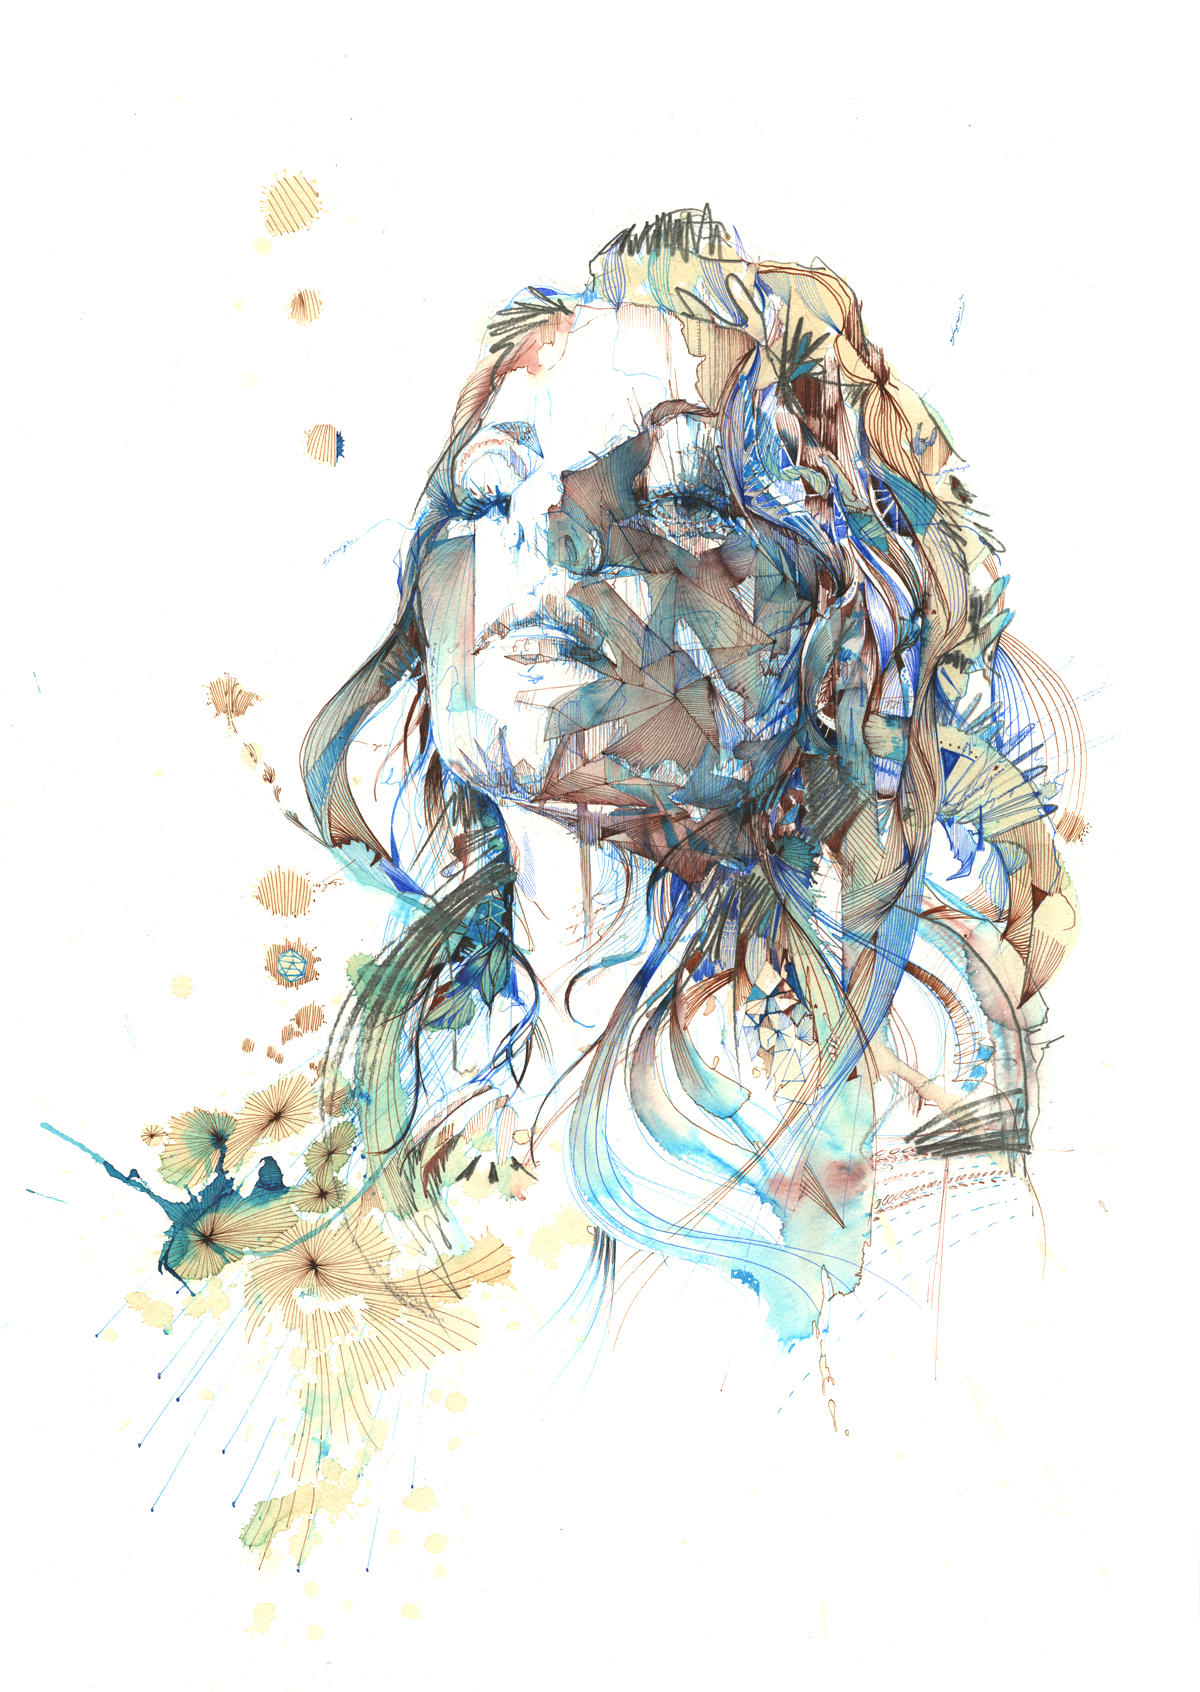 Defiance by Carne Griffiths